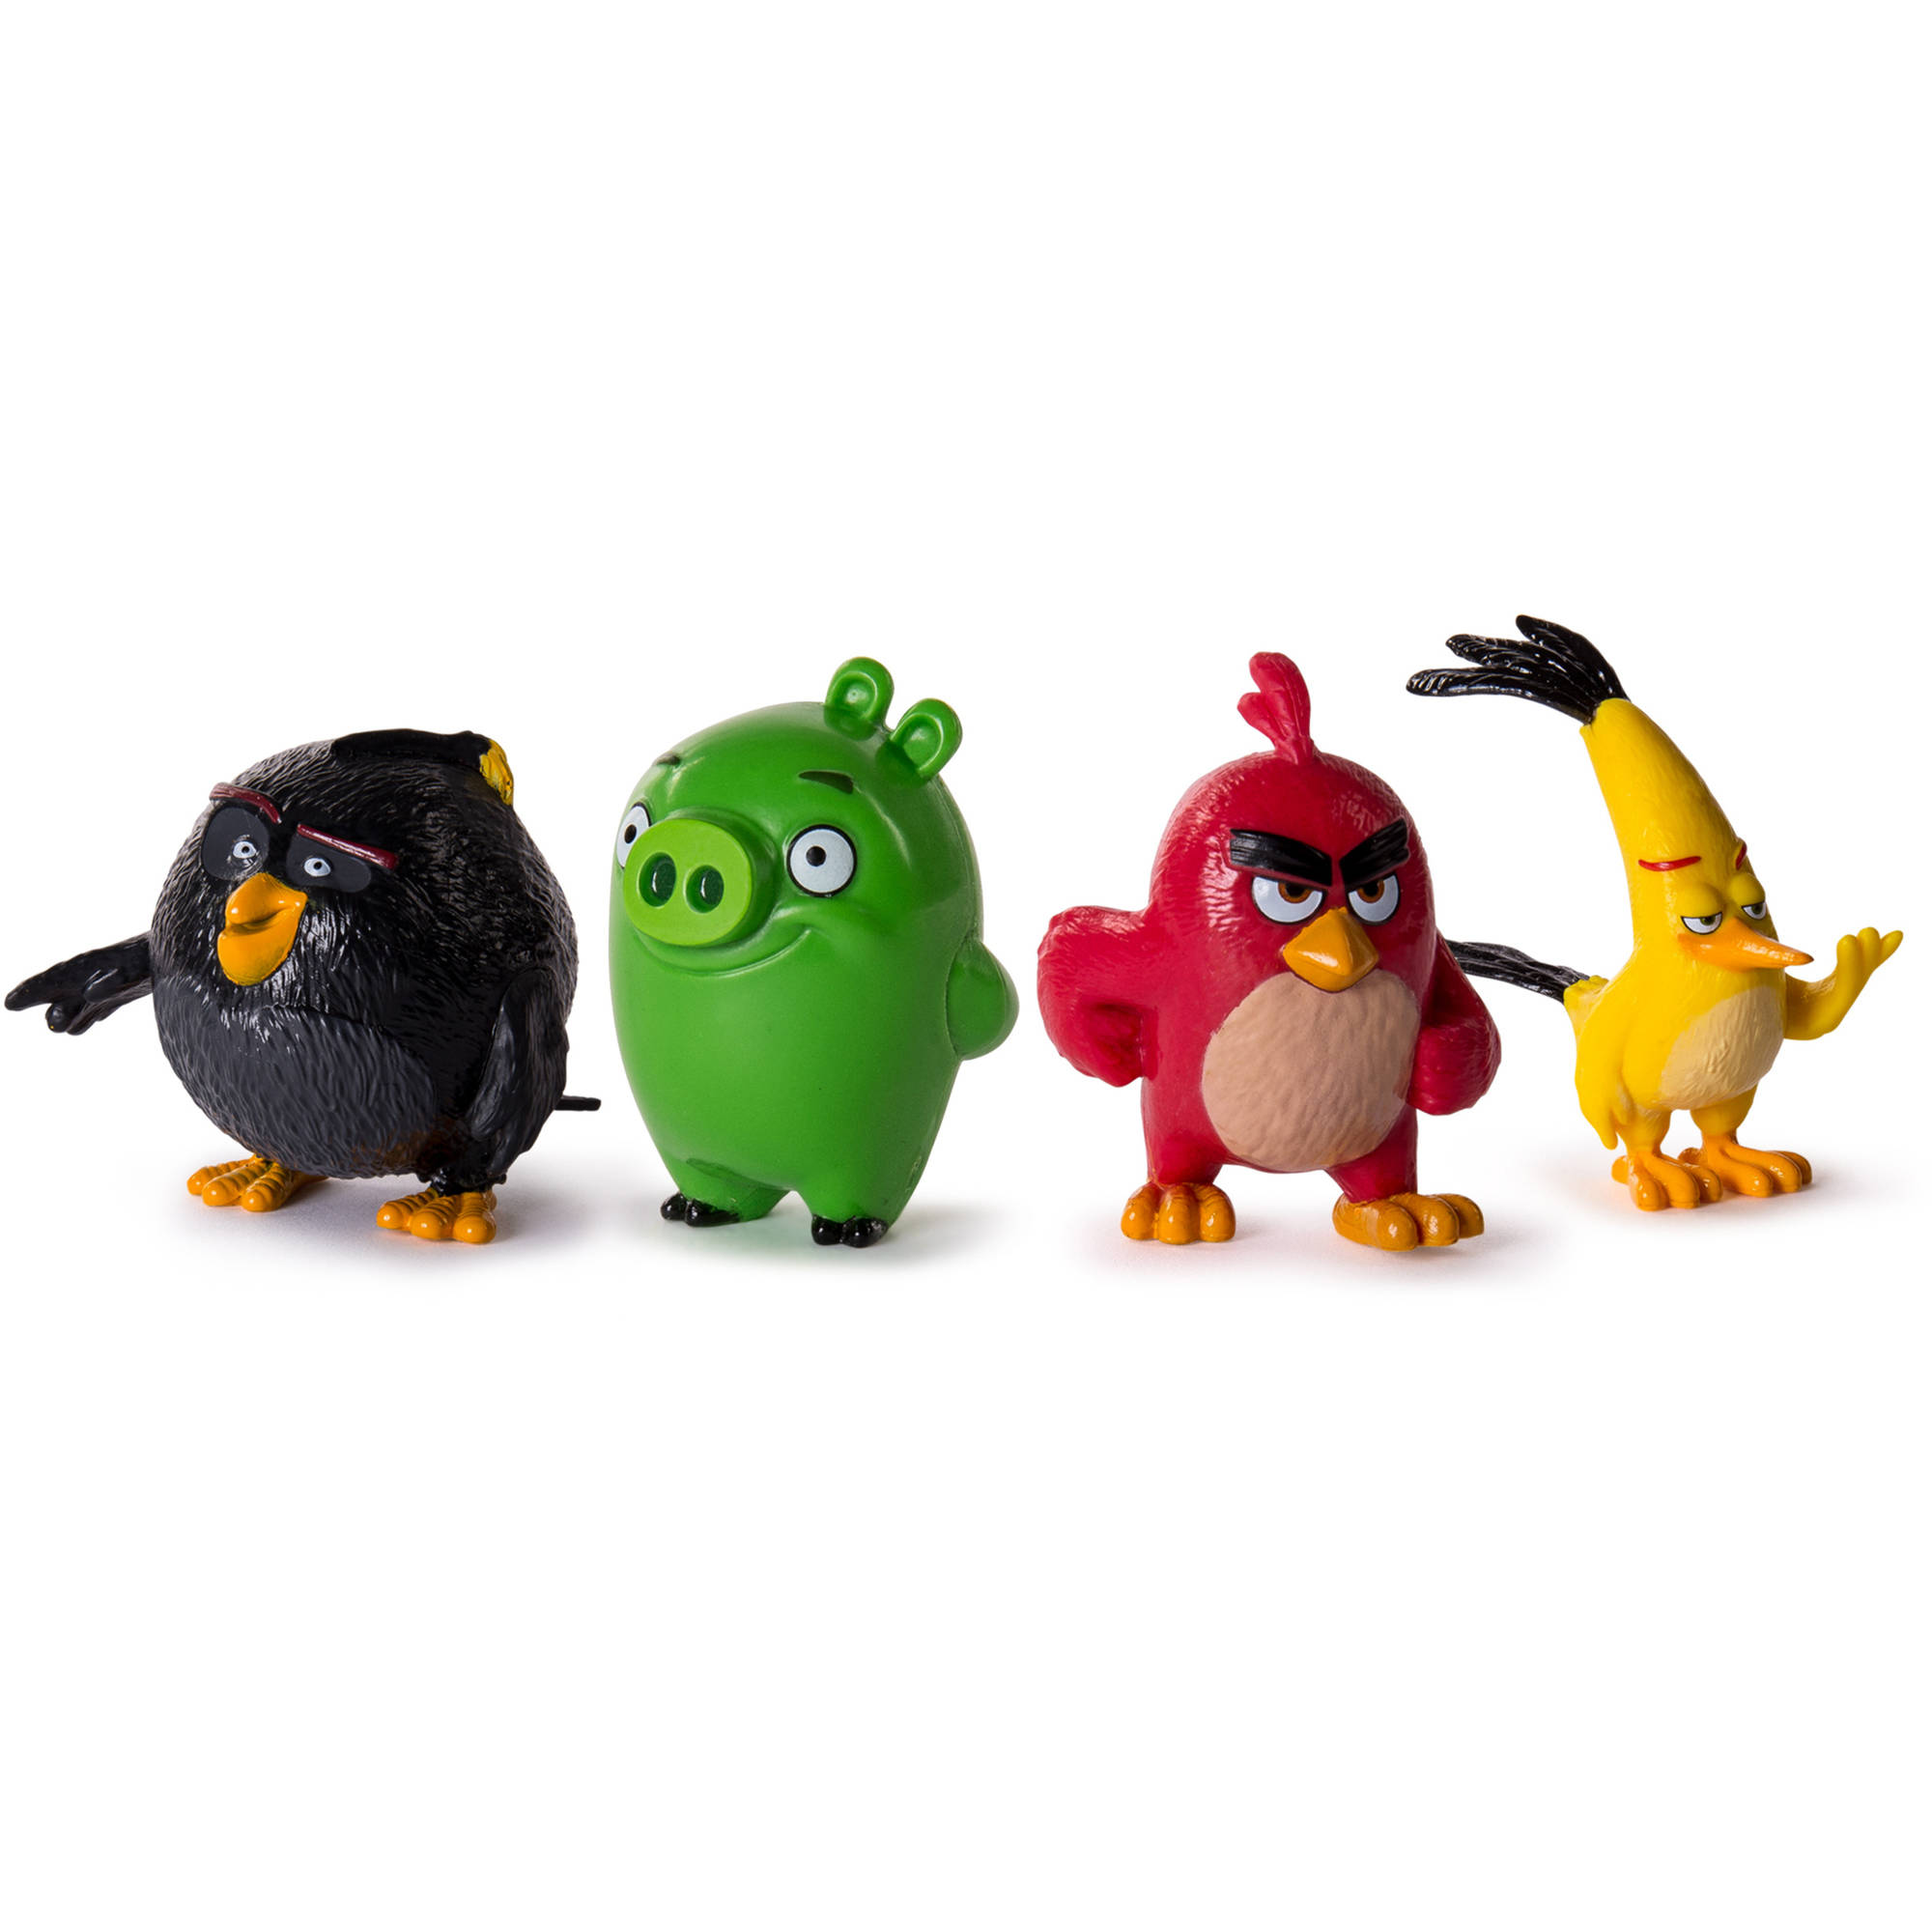 Angry Birds Collectible Figures, 4pk